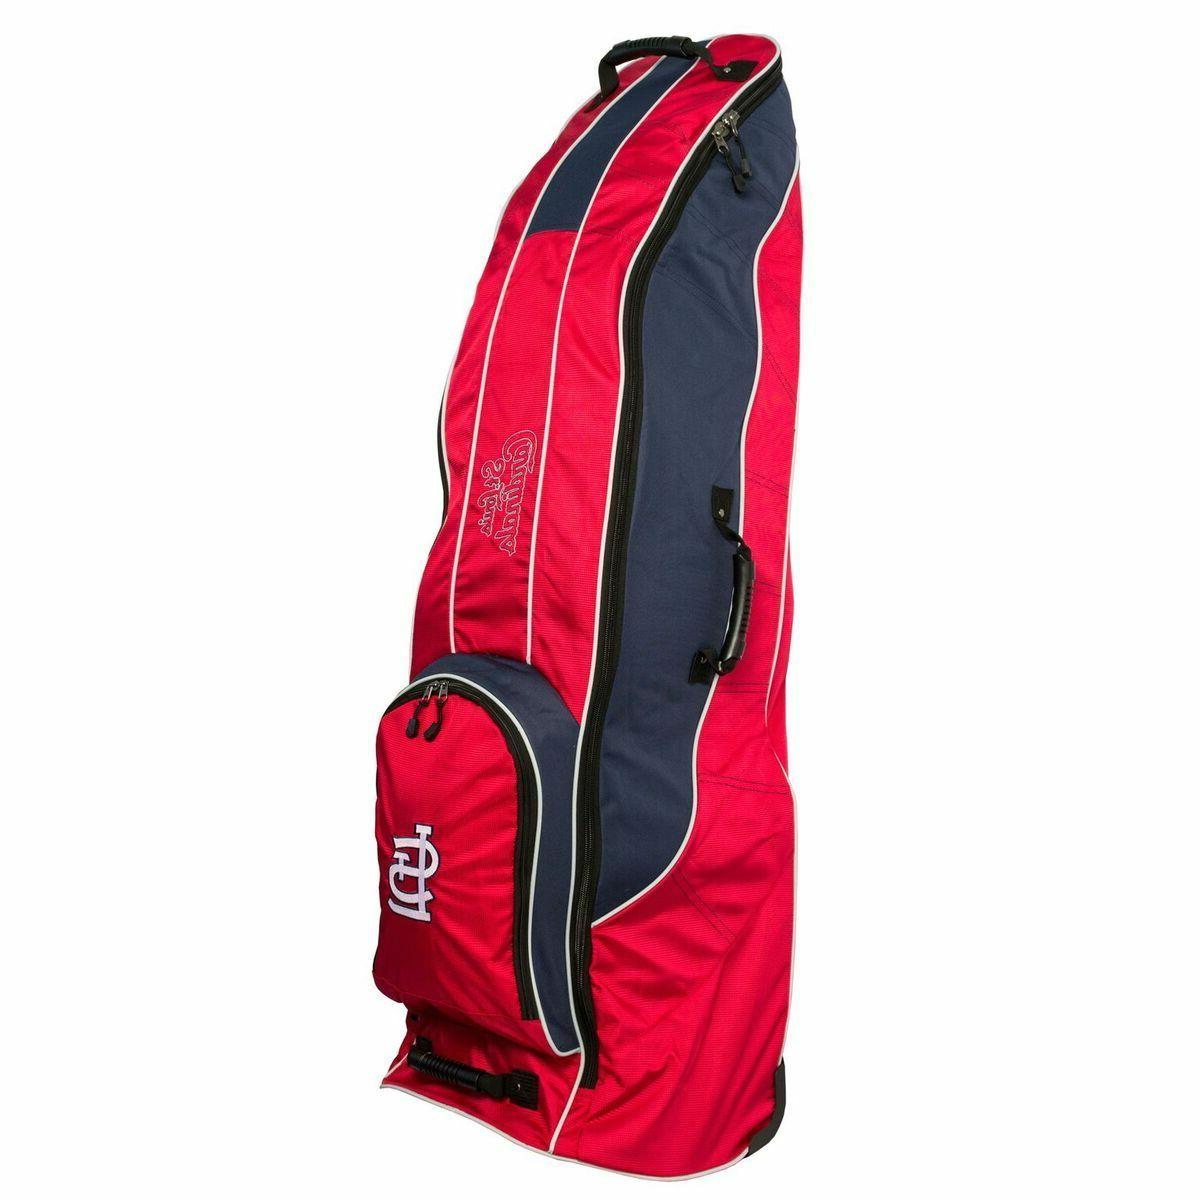 louis cardinals bag cover red